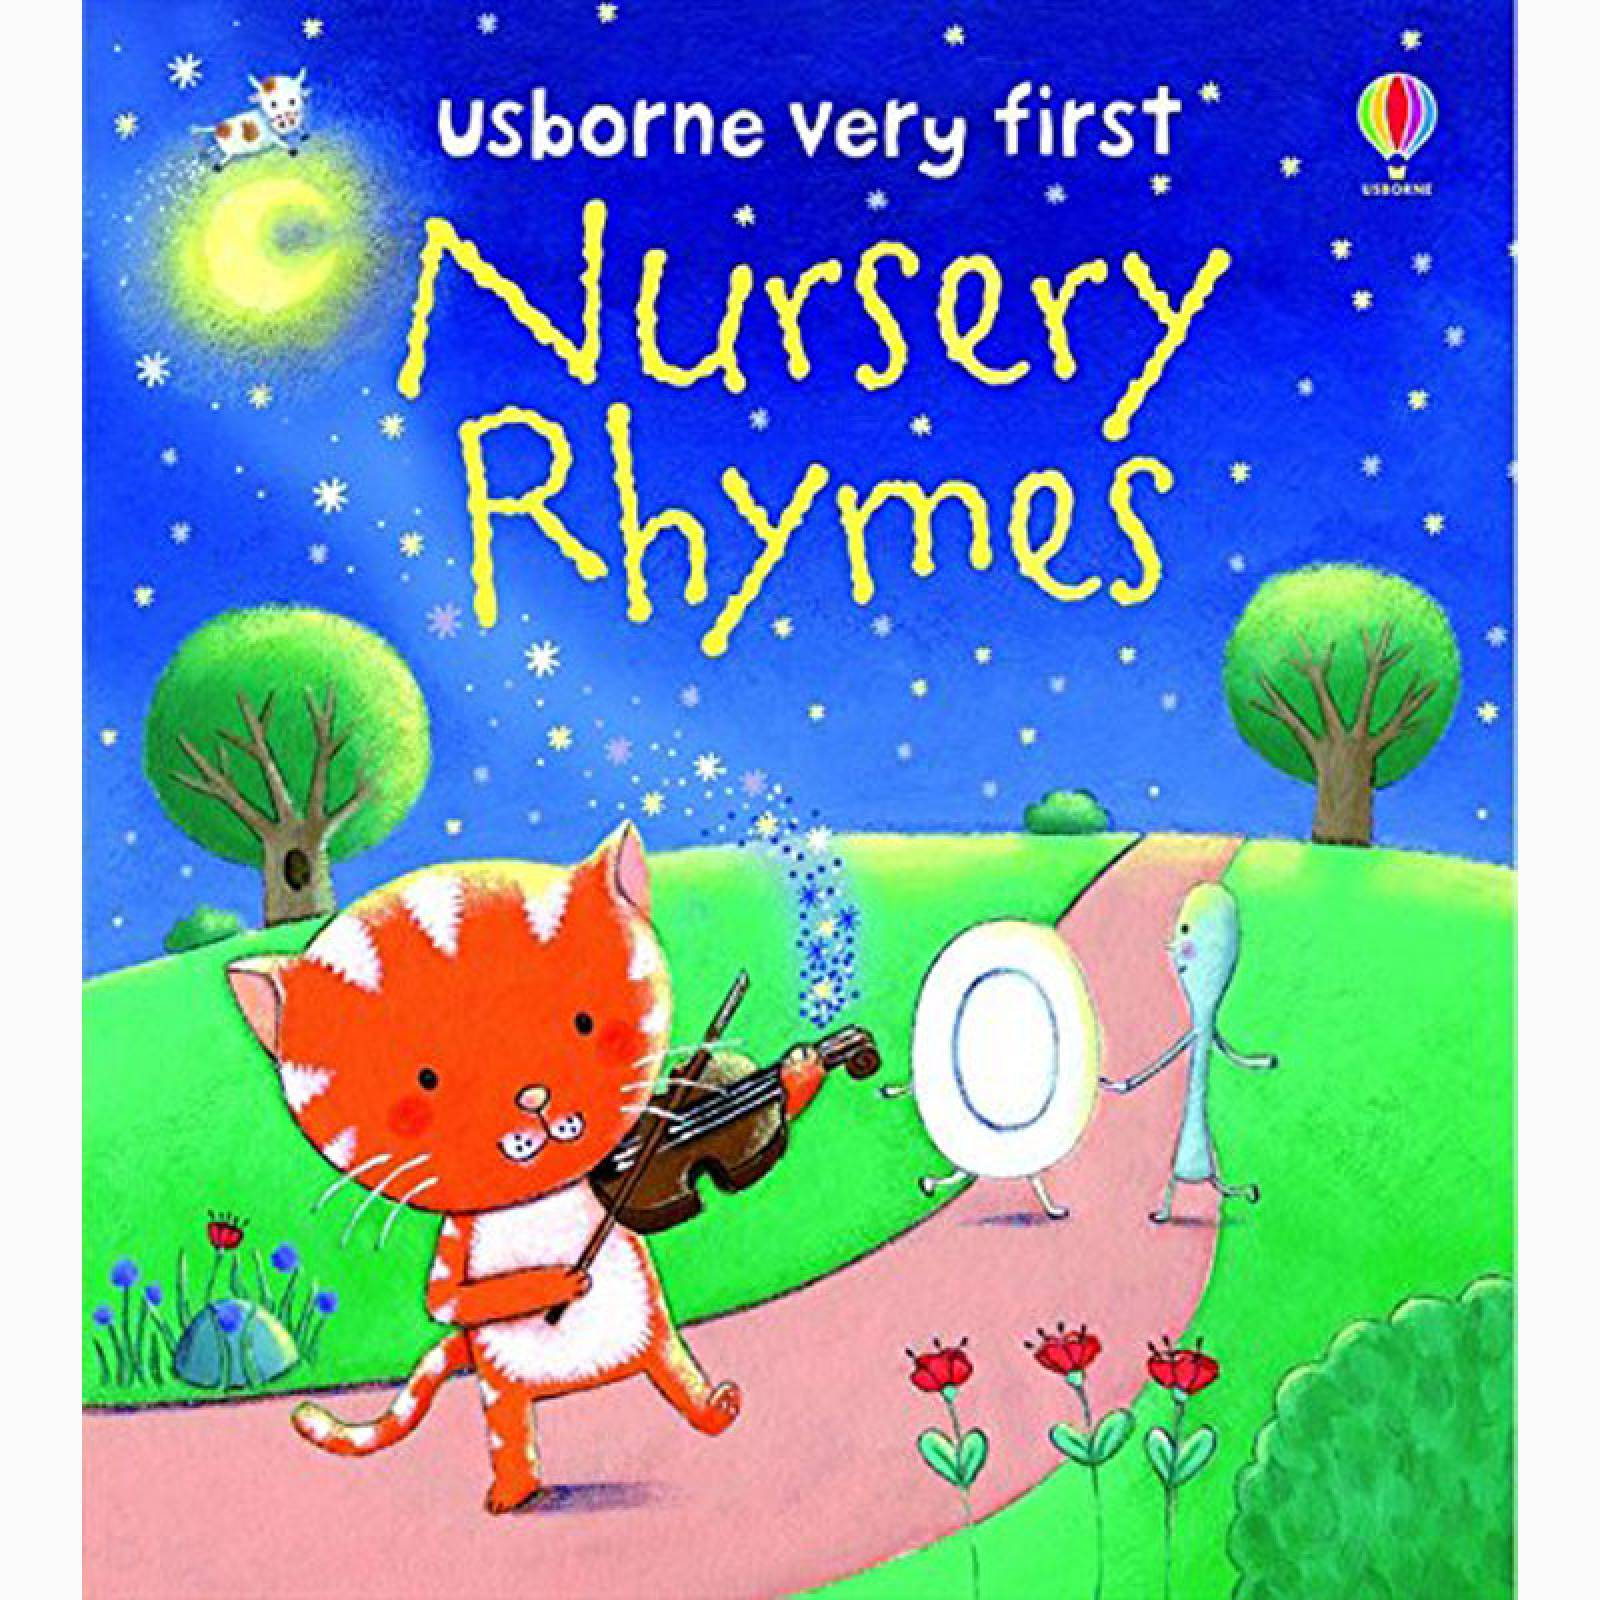 O/ PRINT Usborne Very First Nursery Rhymes - Board Book